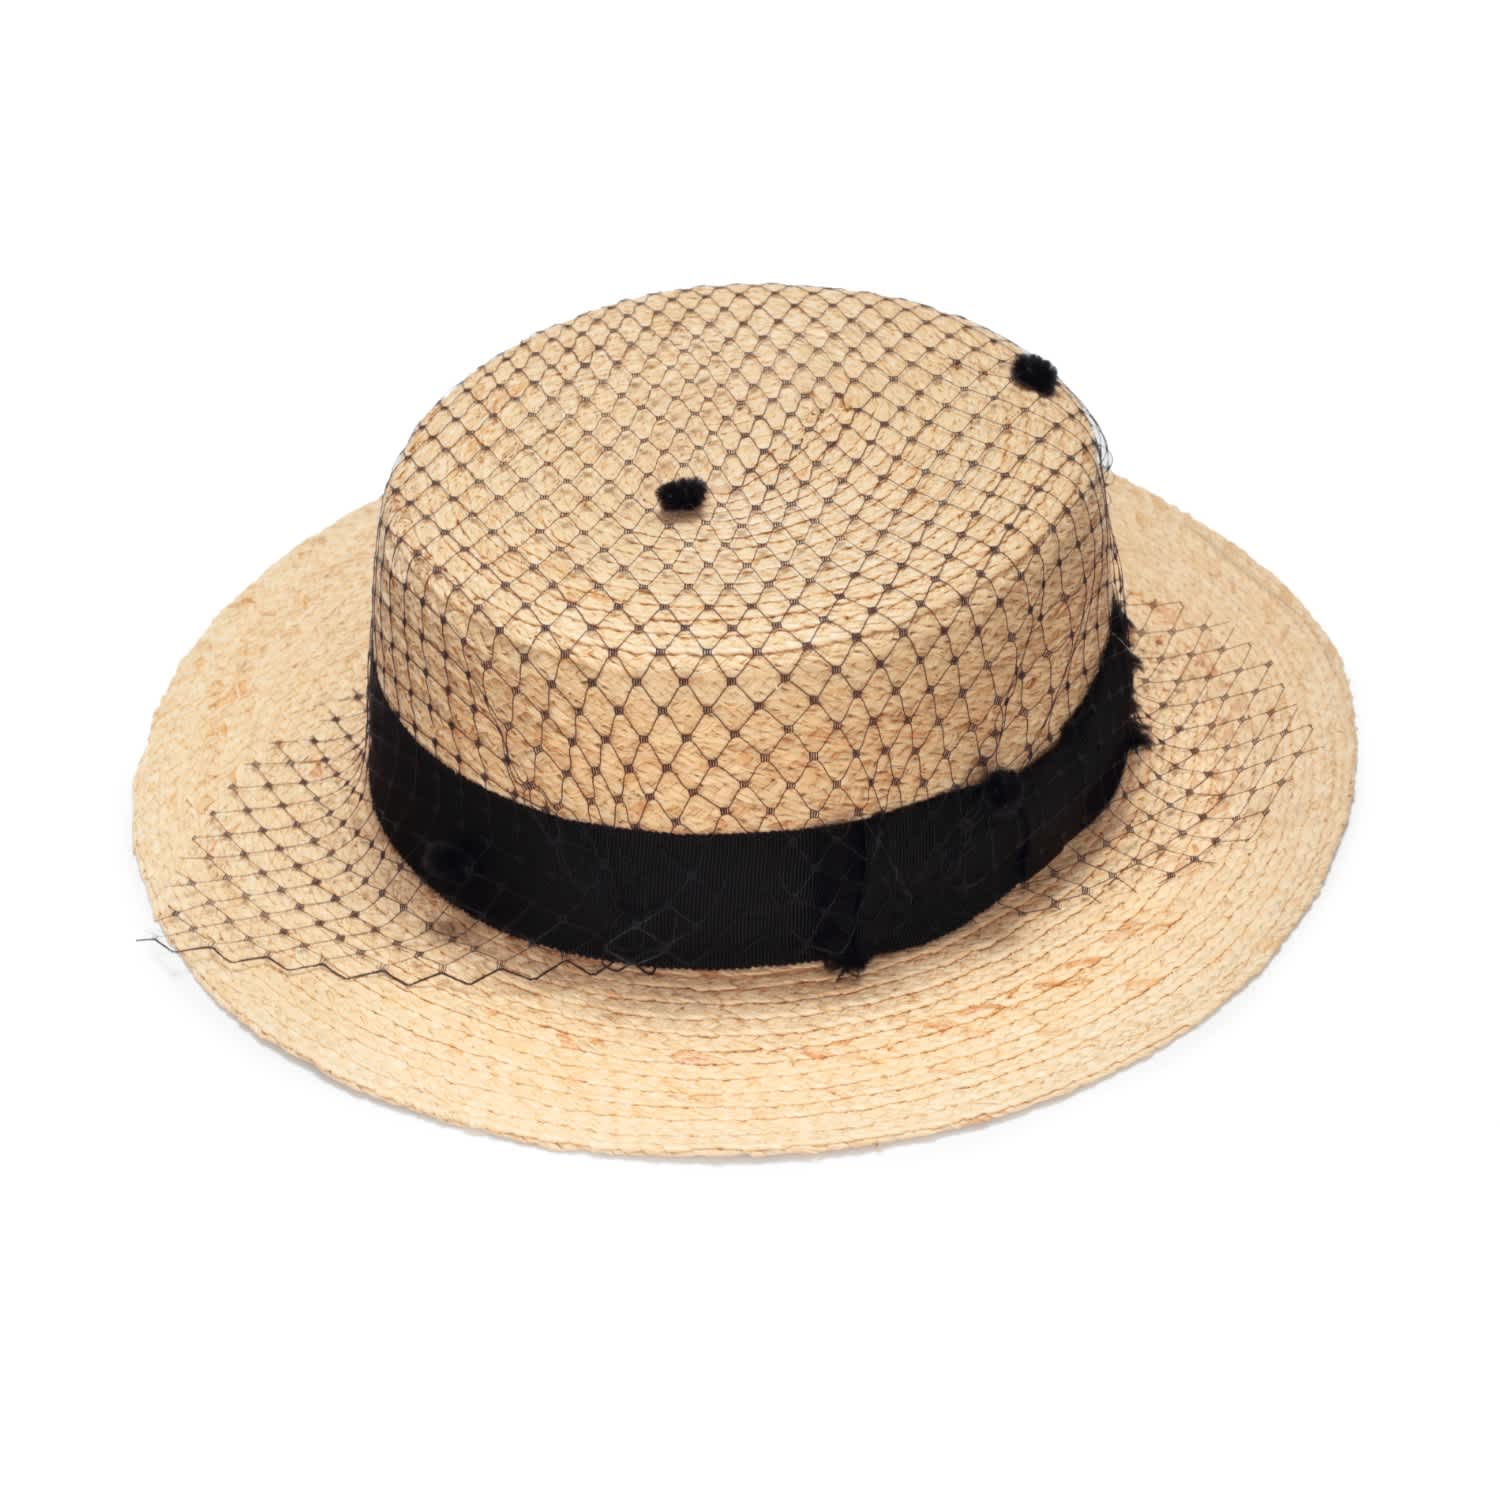 b46f8f9509b1b Straw Boater Hat With Veil image